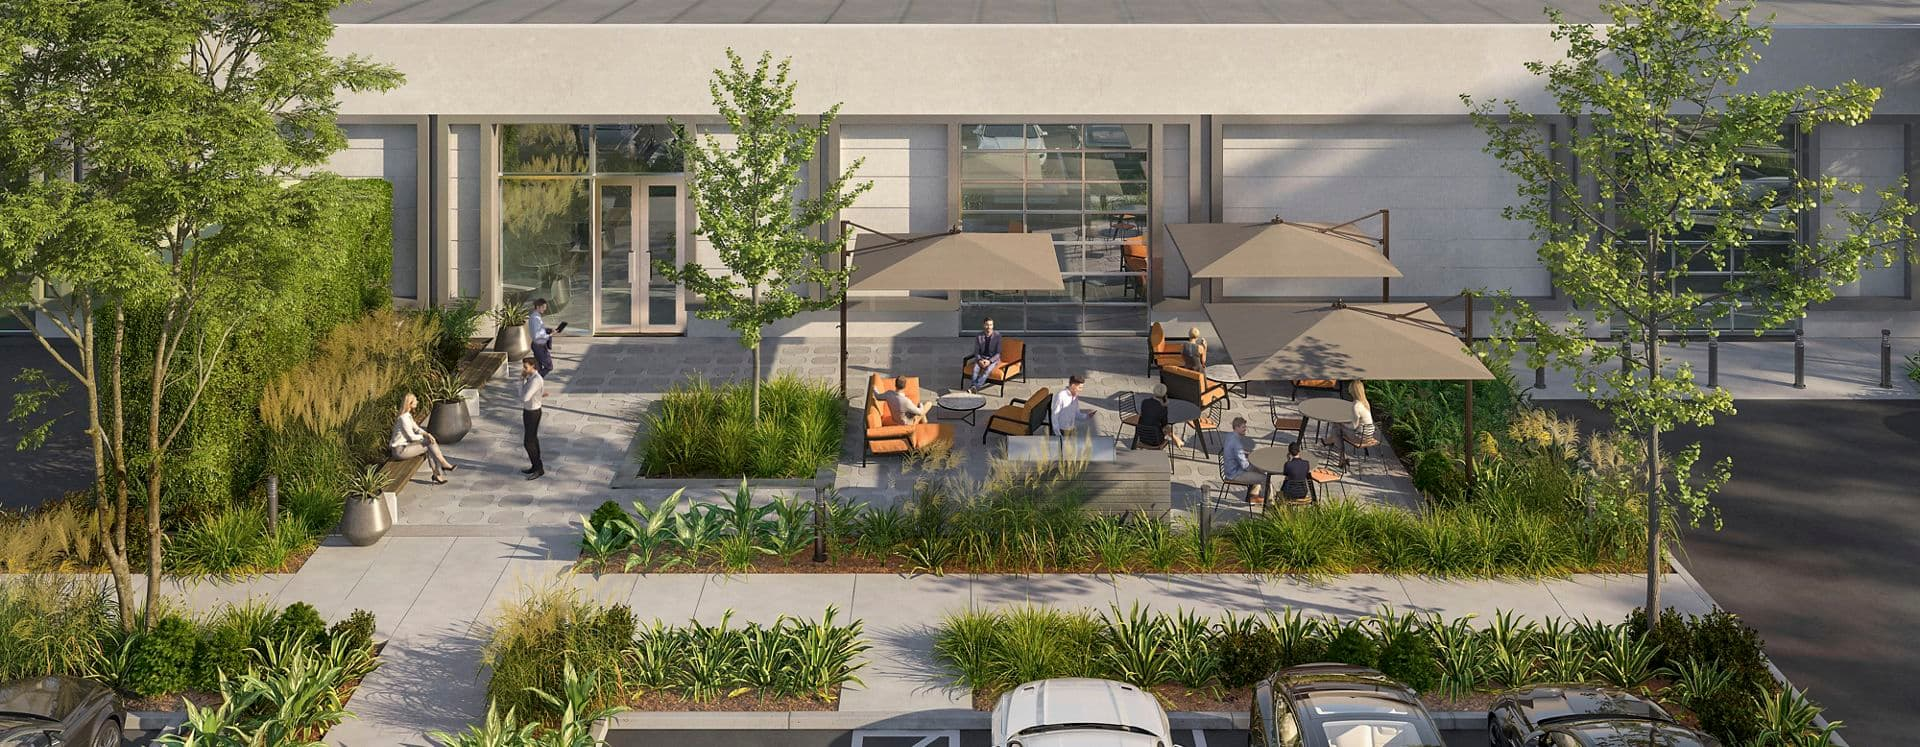 Exterior rendering of 305 North Mathilda in Sunnyvale, Silicon Valley, Ca